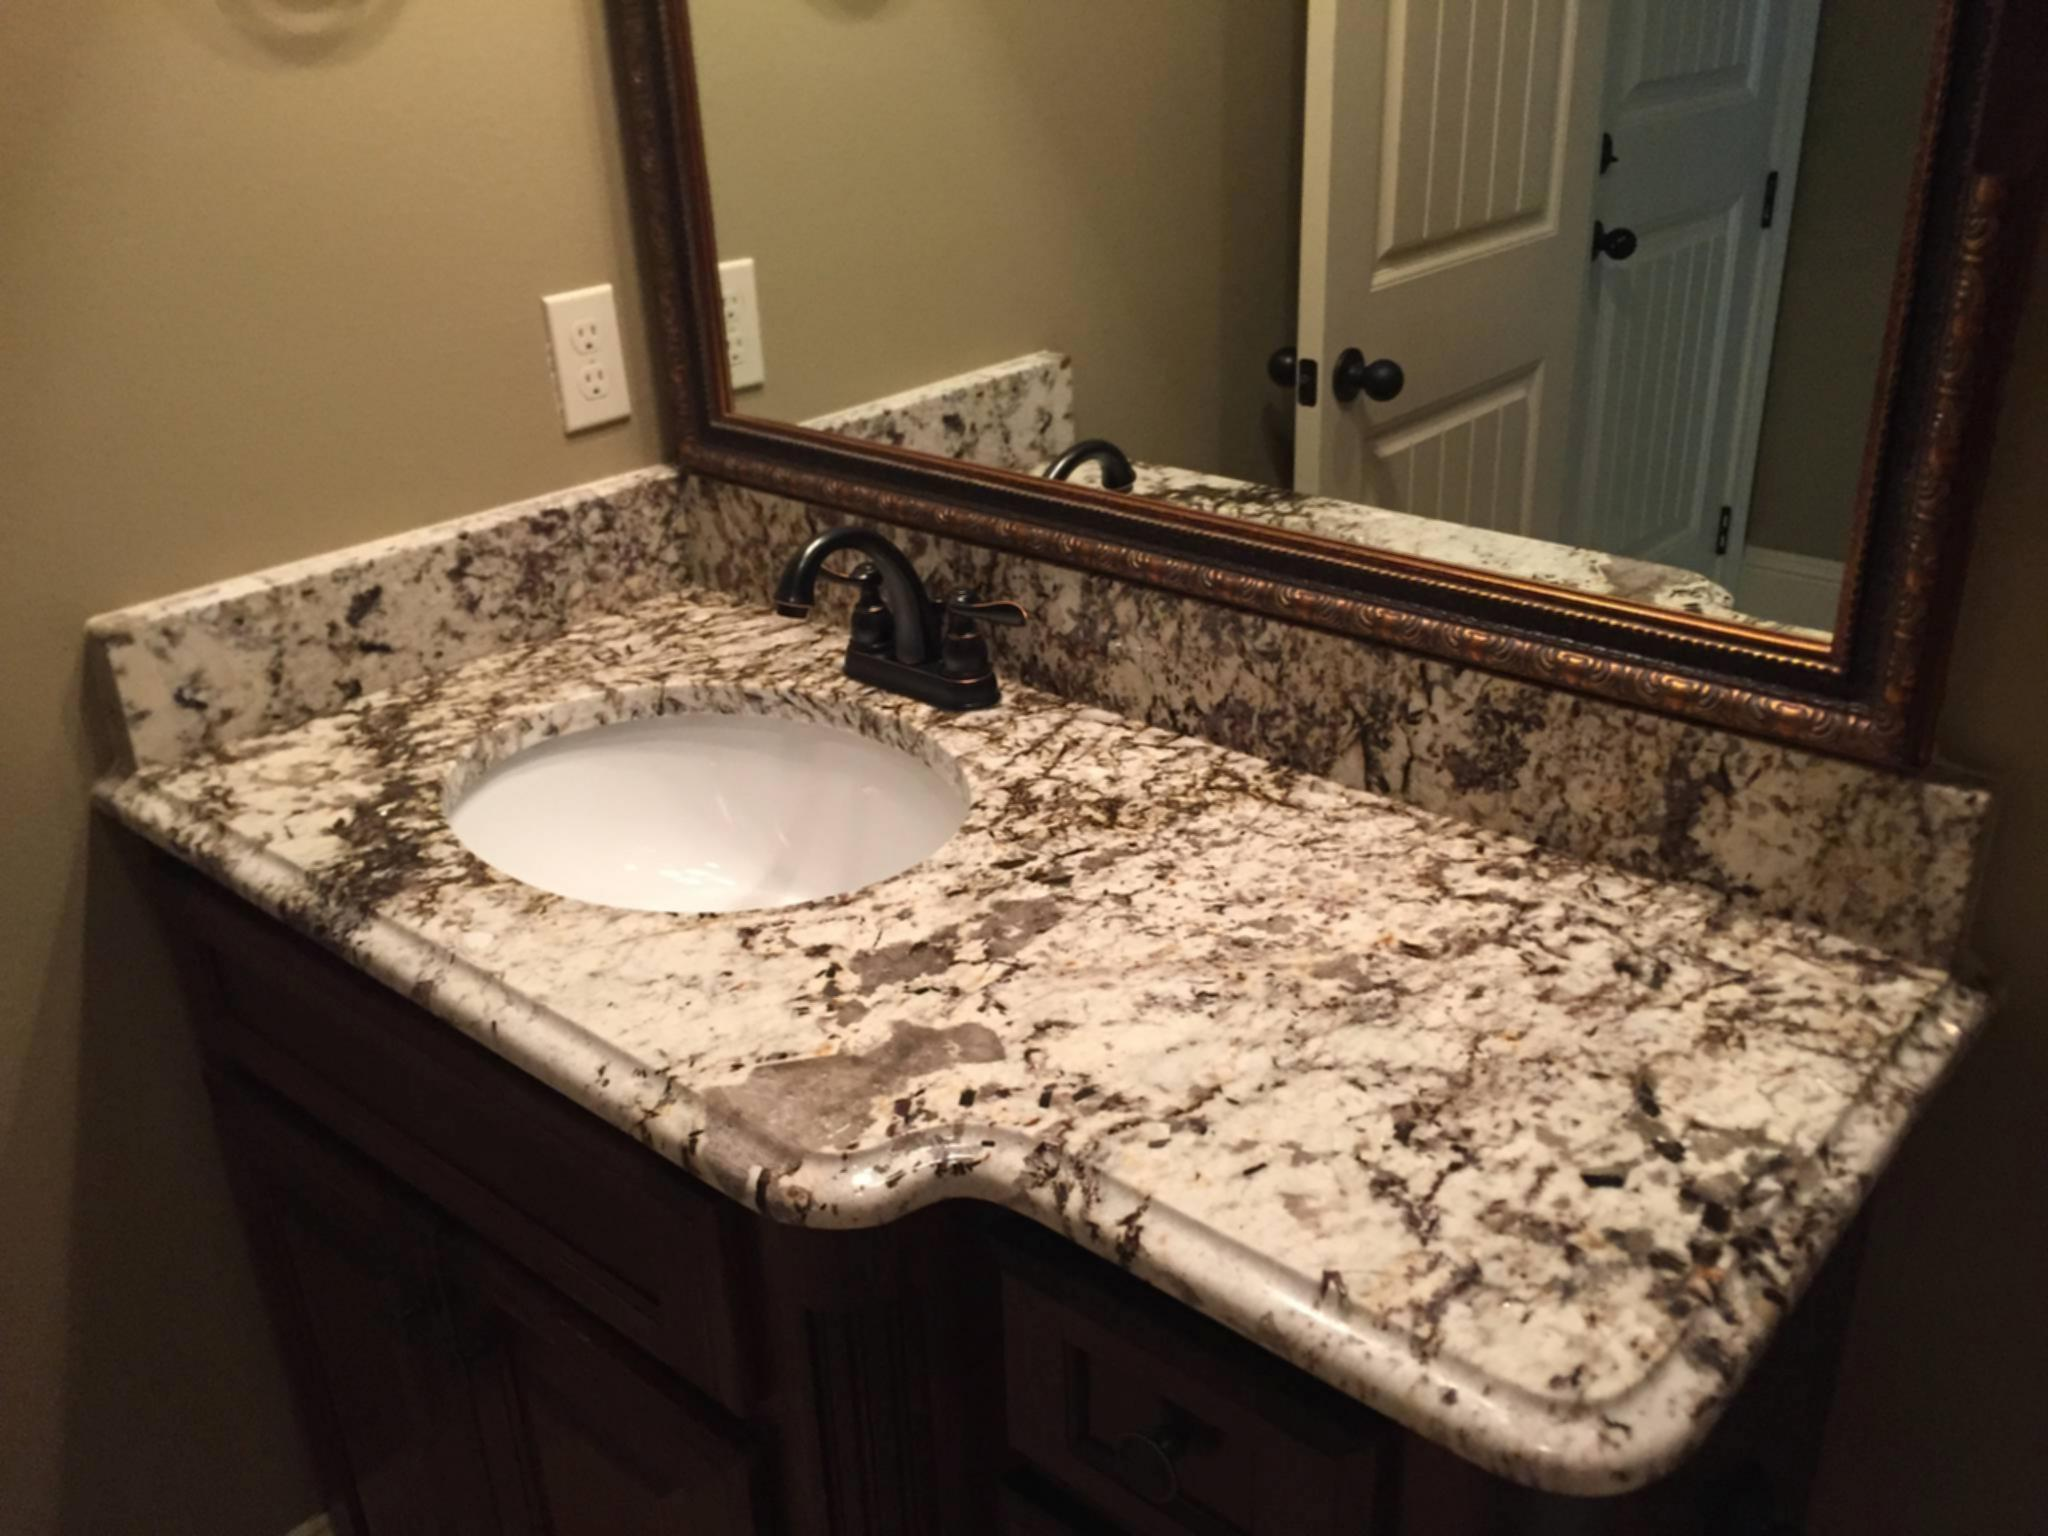 bathroom:Bathroom Granite Countertops With Sink Bathroom Granite Countertops In Replace Countertop Toilet With Sink Good